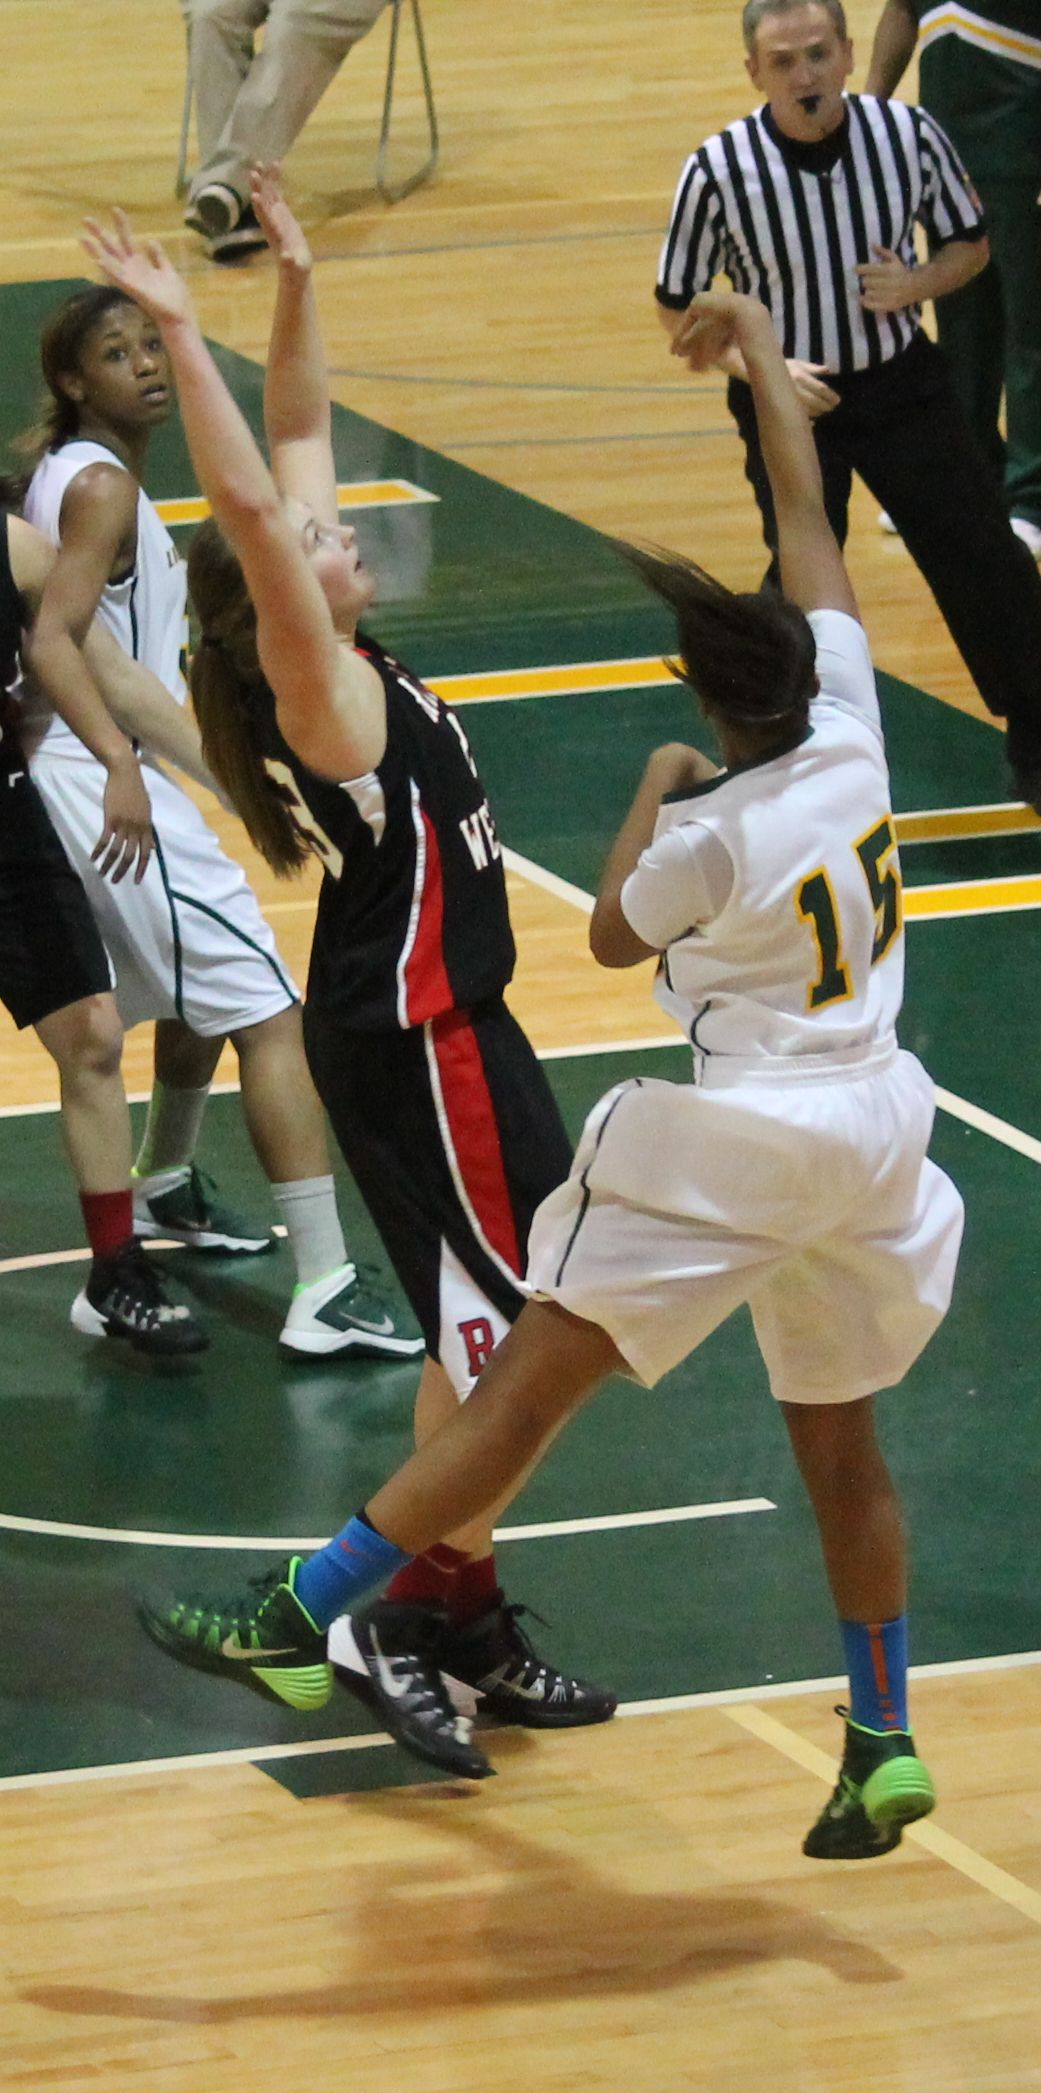 Senior point guard Chelsea Williams, #15, sinks a shot for the Green and Gold. Photo by Kimeberly Toledo